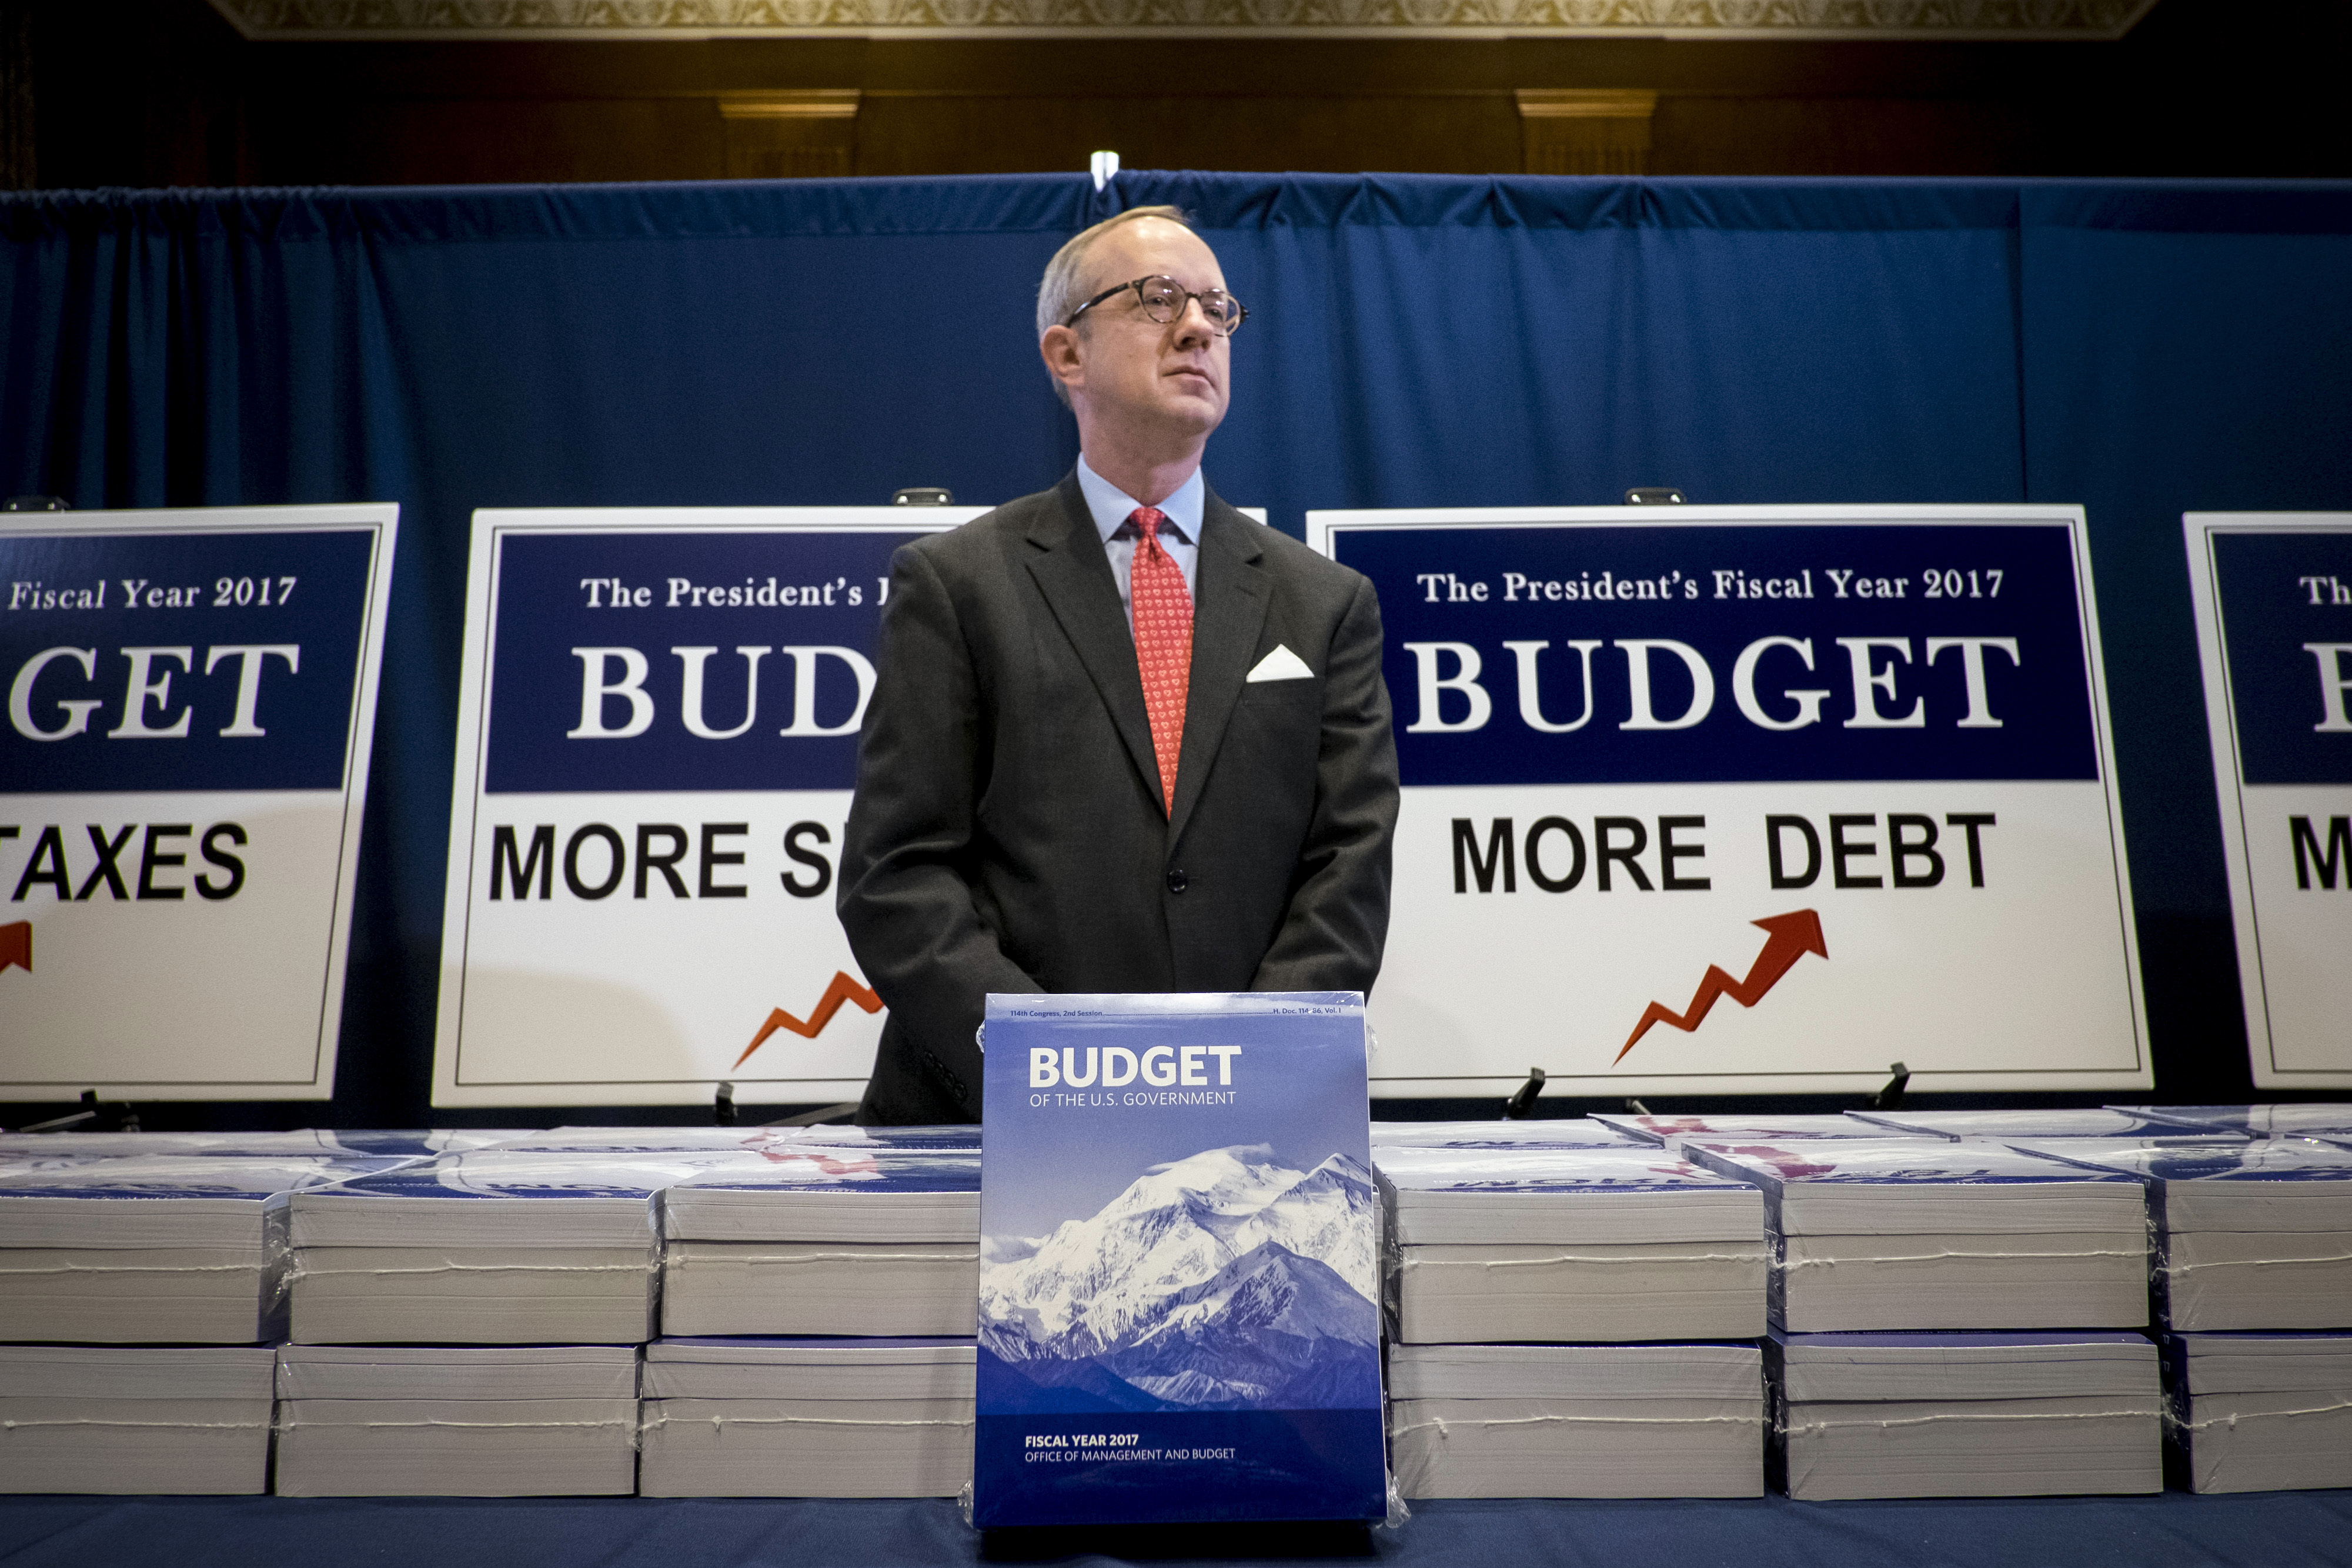 White House Releases President Obama's Fiscal Year 2017 Budget Plan